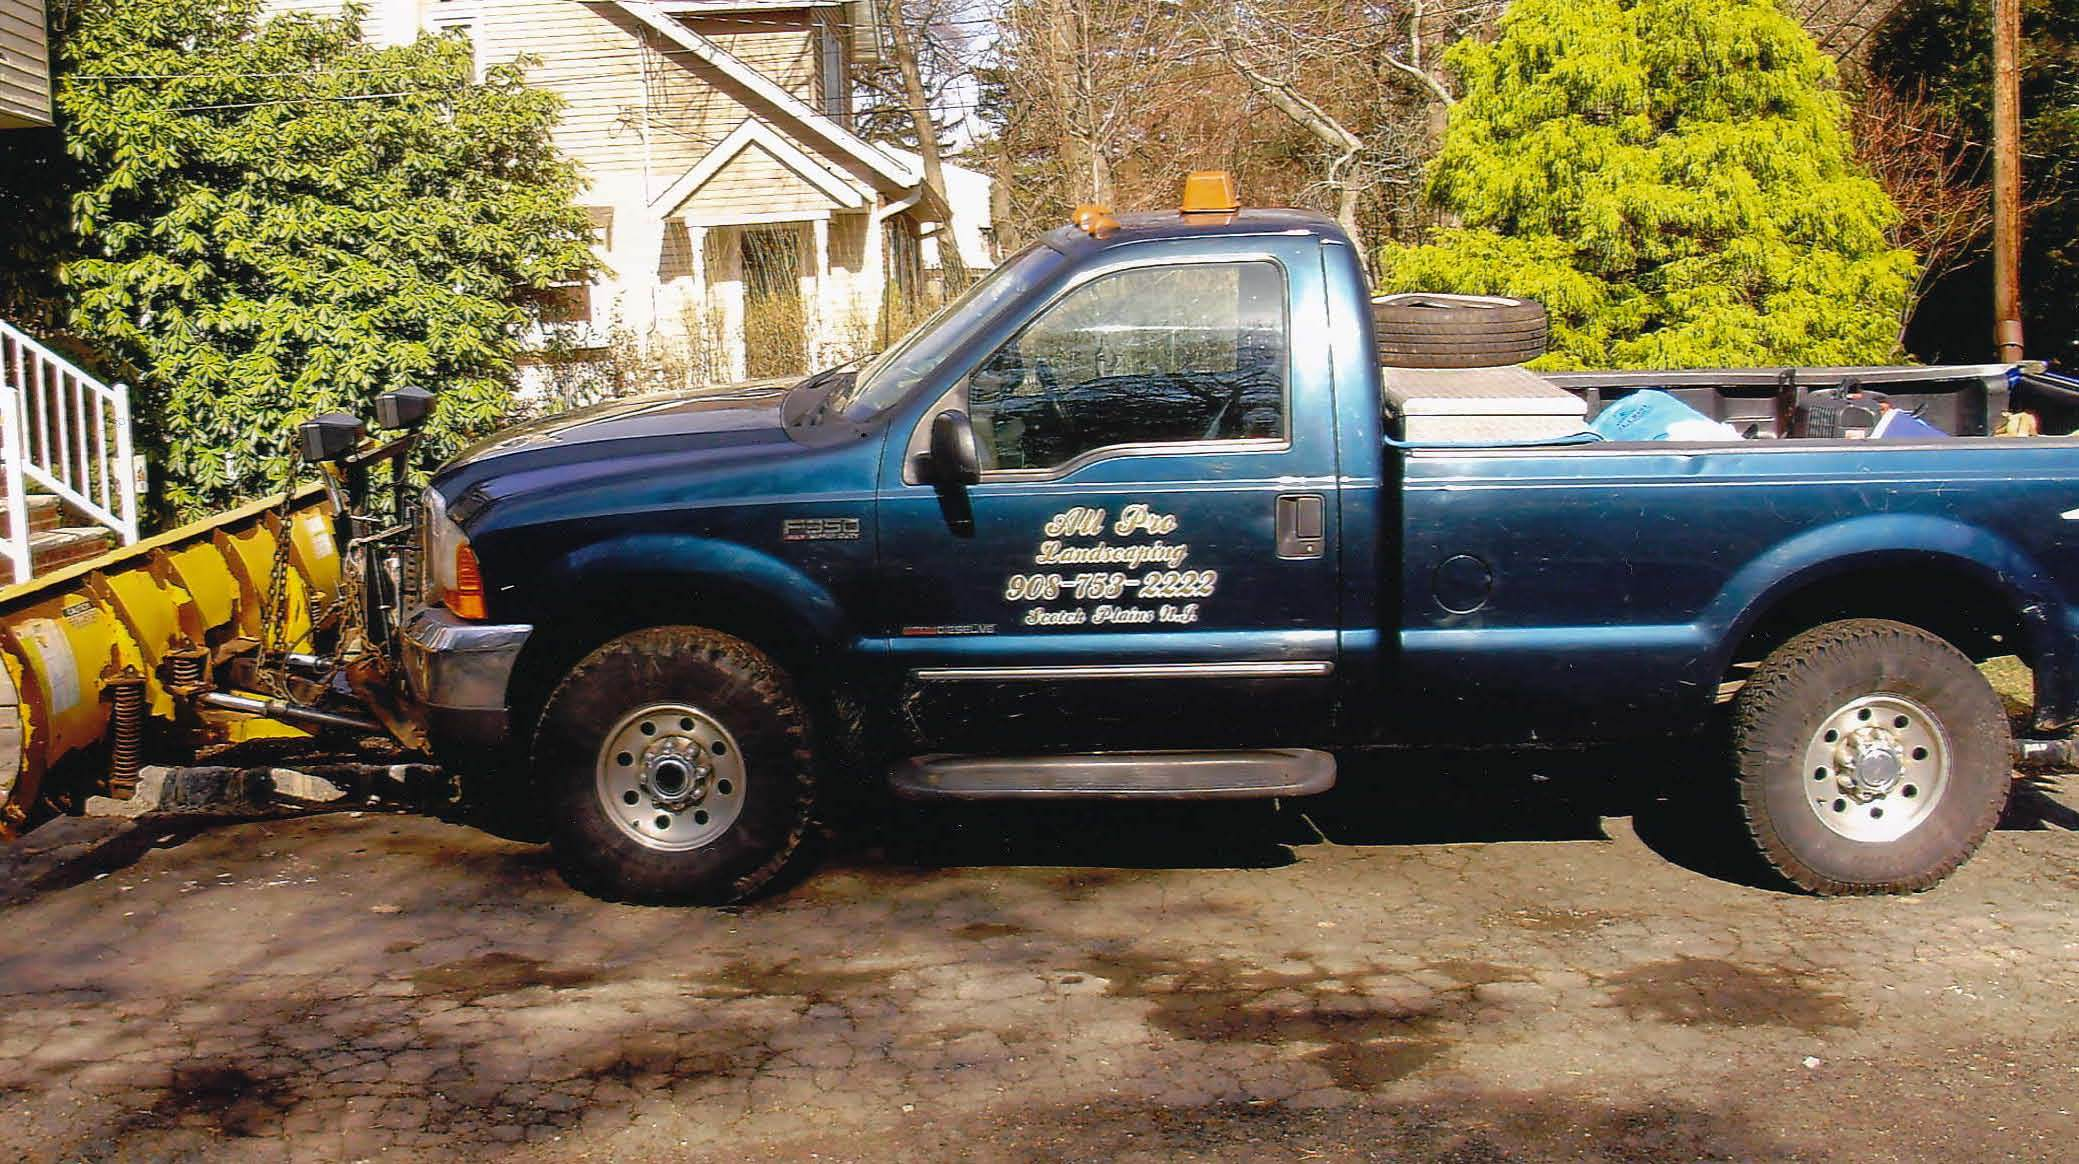 Rs All Pro Landscaping An Established Landscaping Company